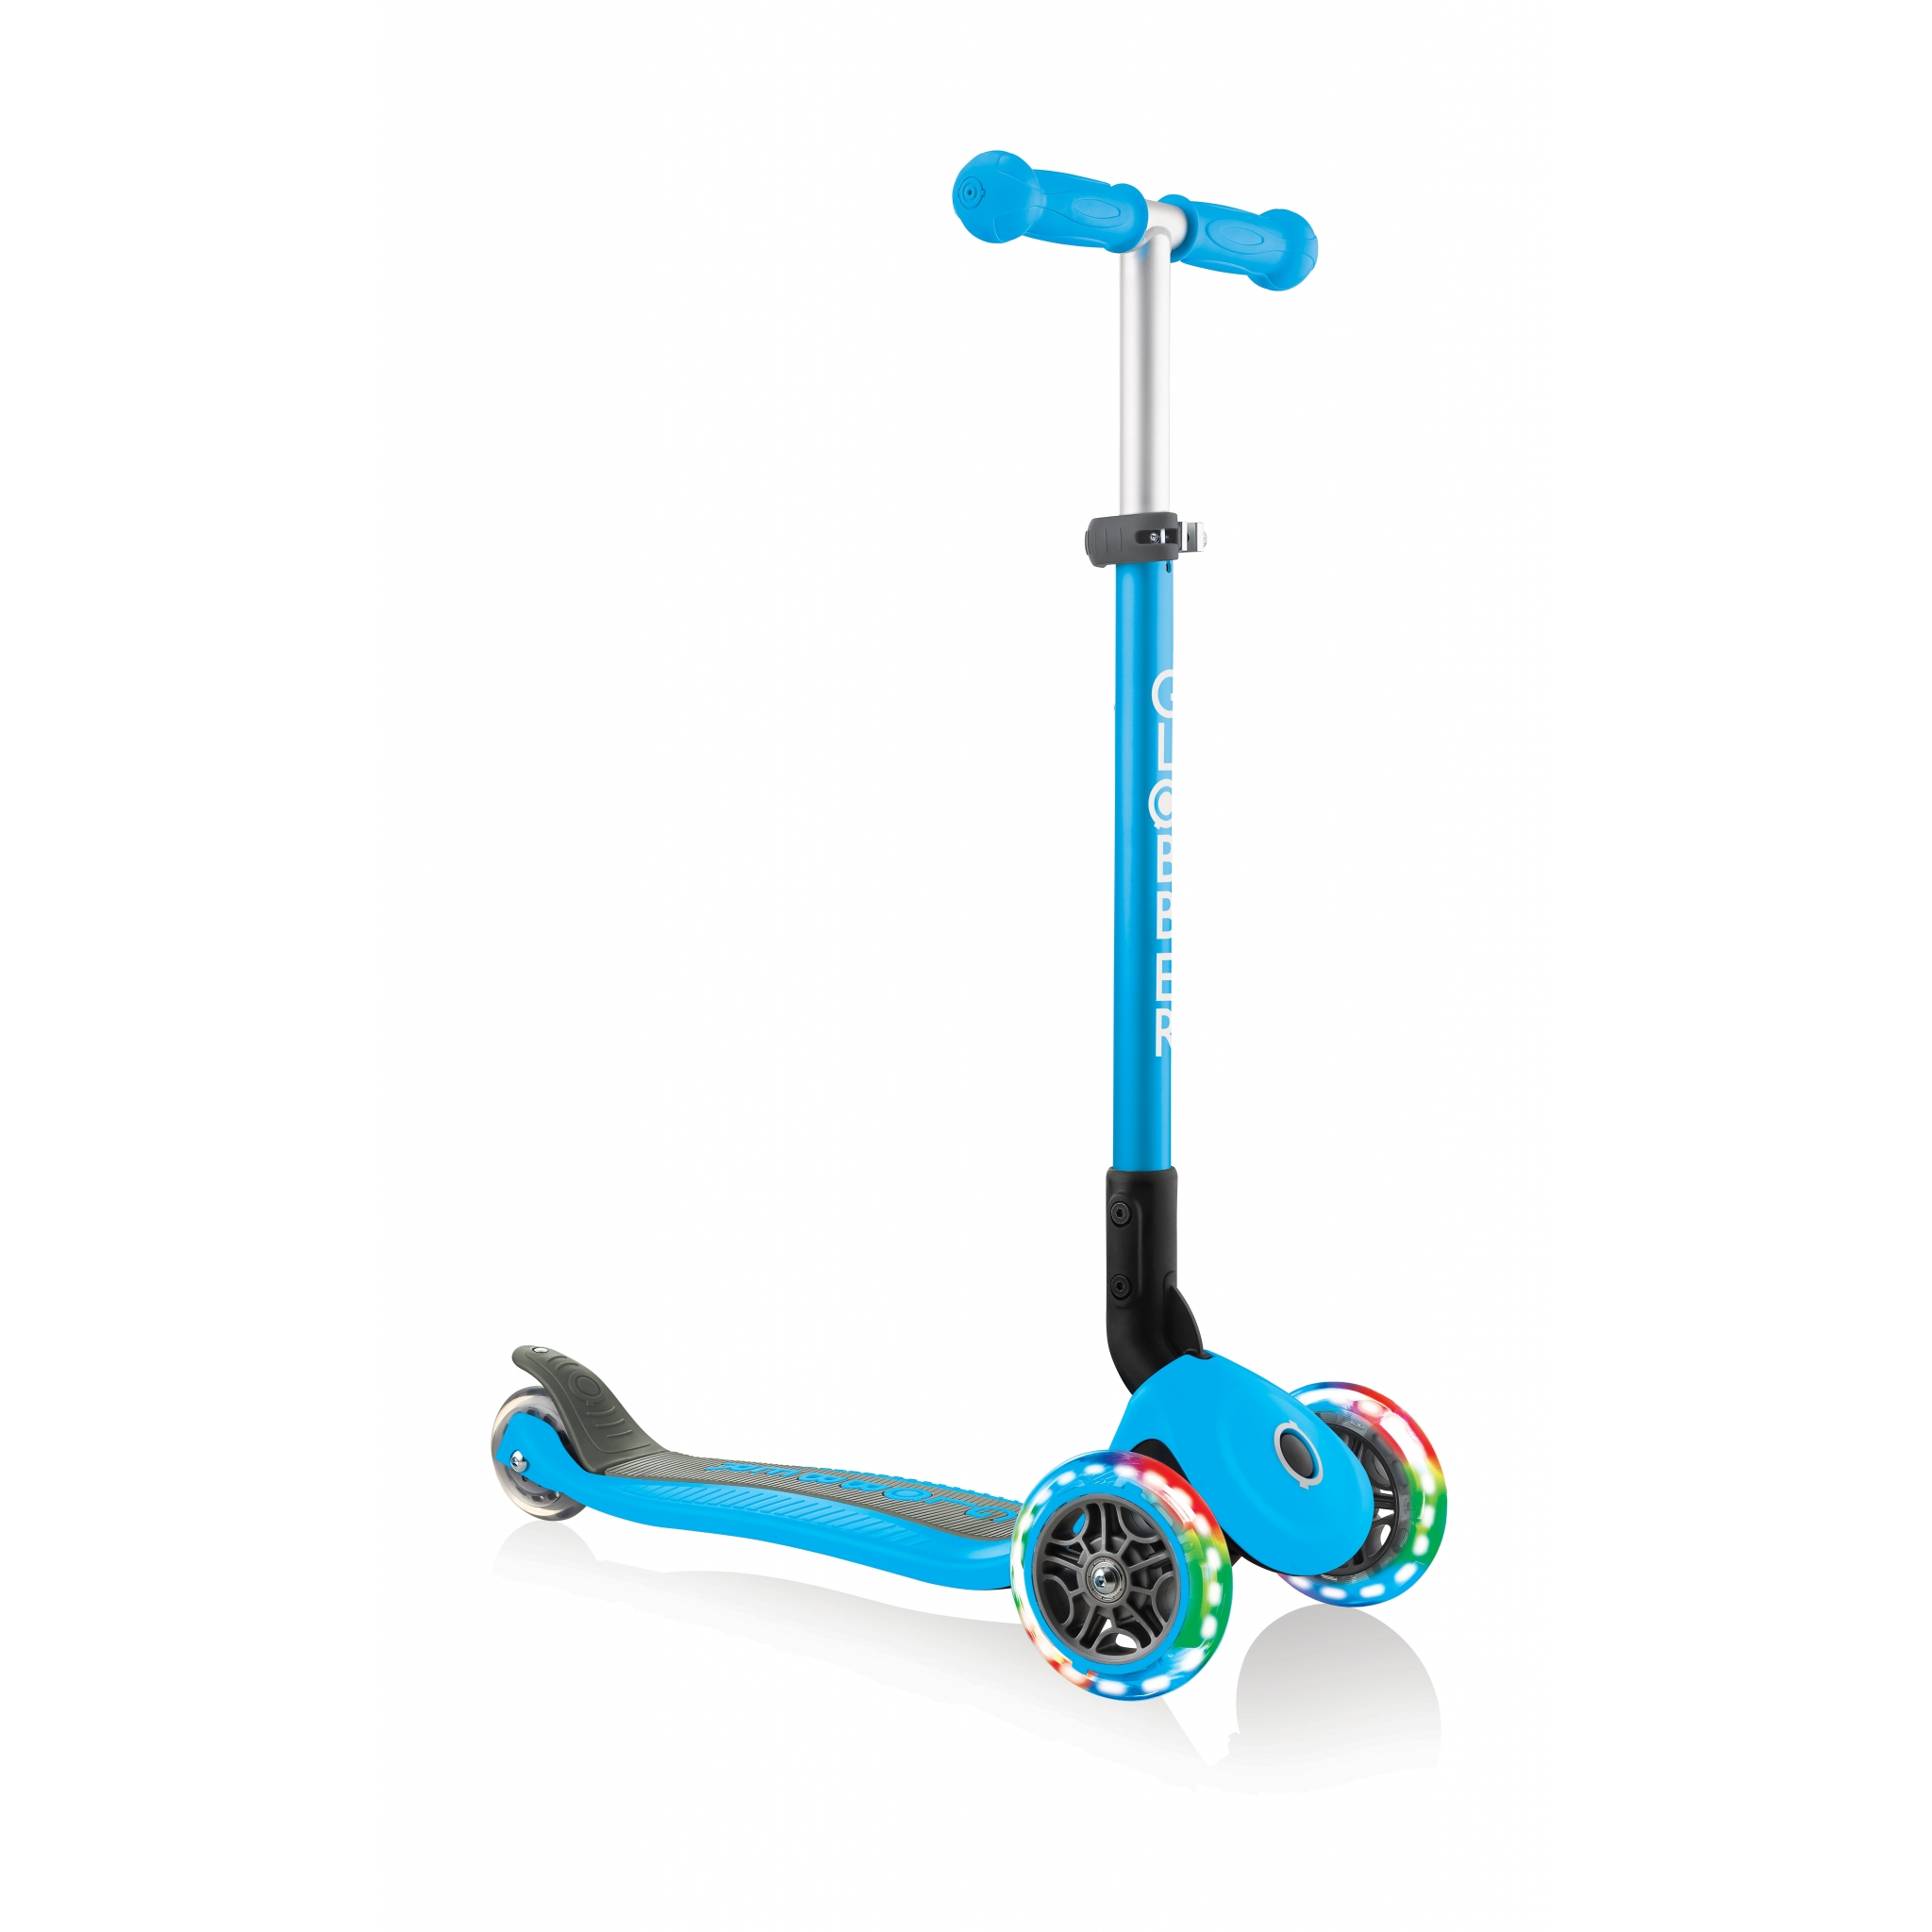 PRIMO-FOLDABLE-LIGHTS-3-wheel-foldable-scooter-light-up-scooter-for-kids-sky-blue 4